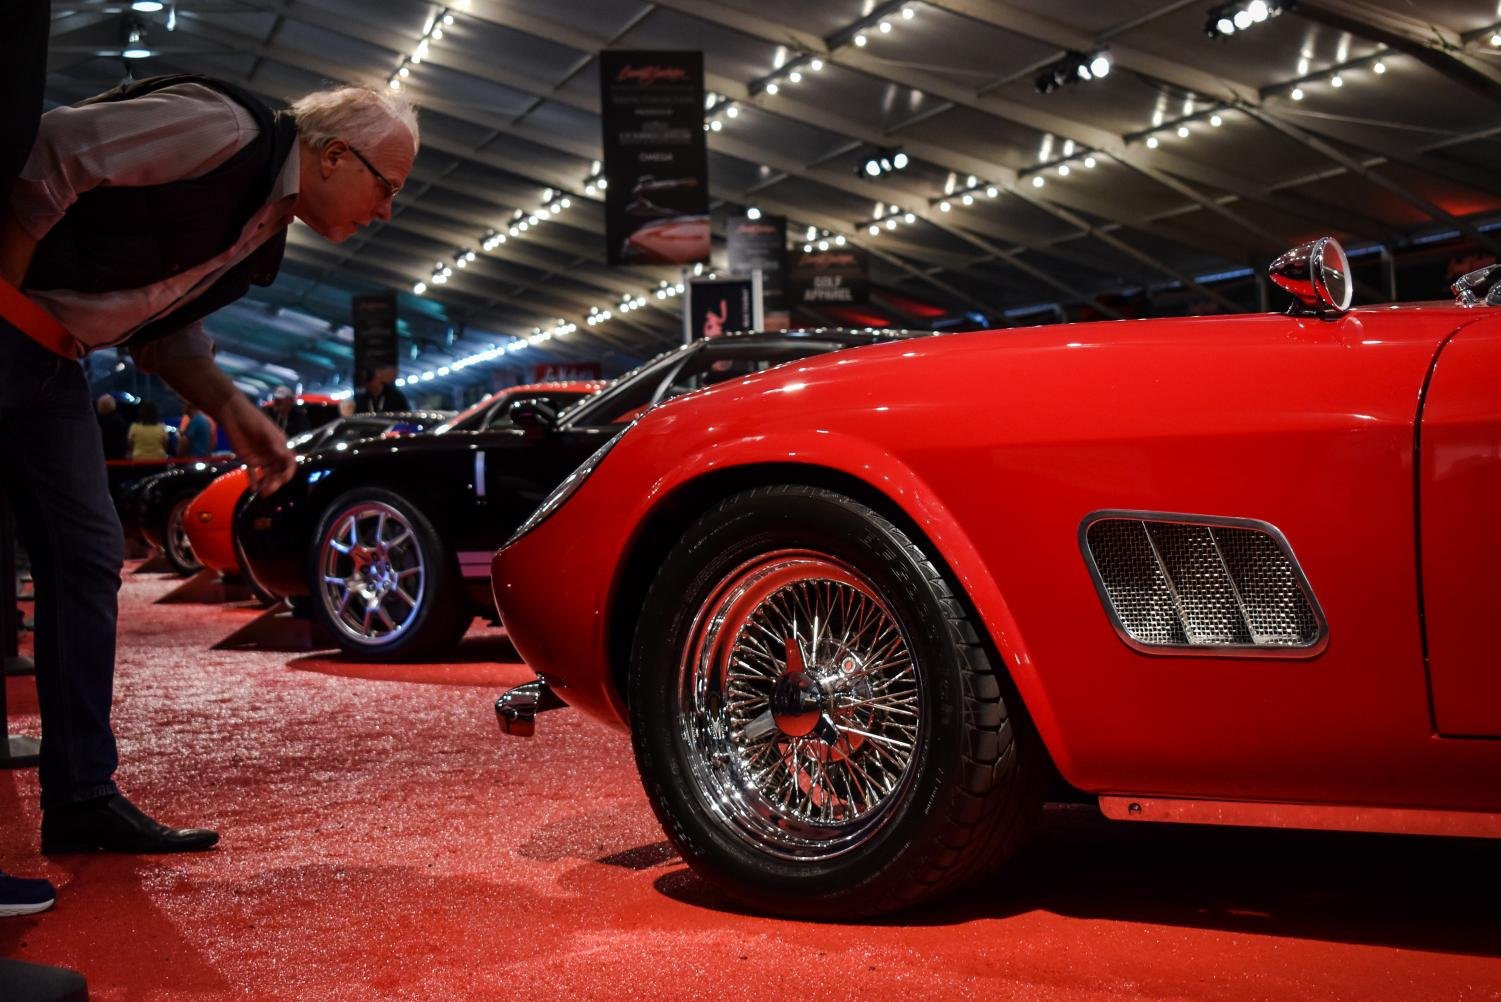 A prospective buyer inspects one of the collector cars for auction